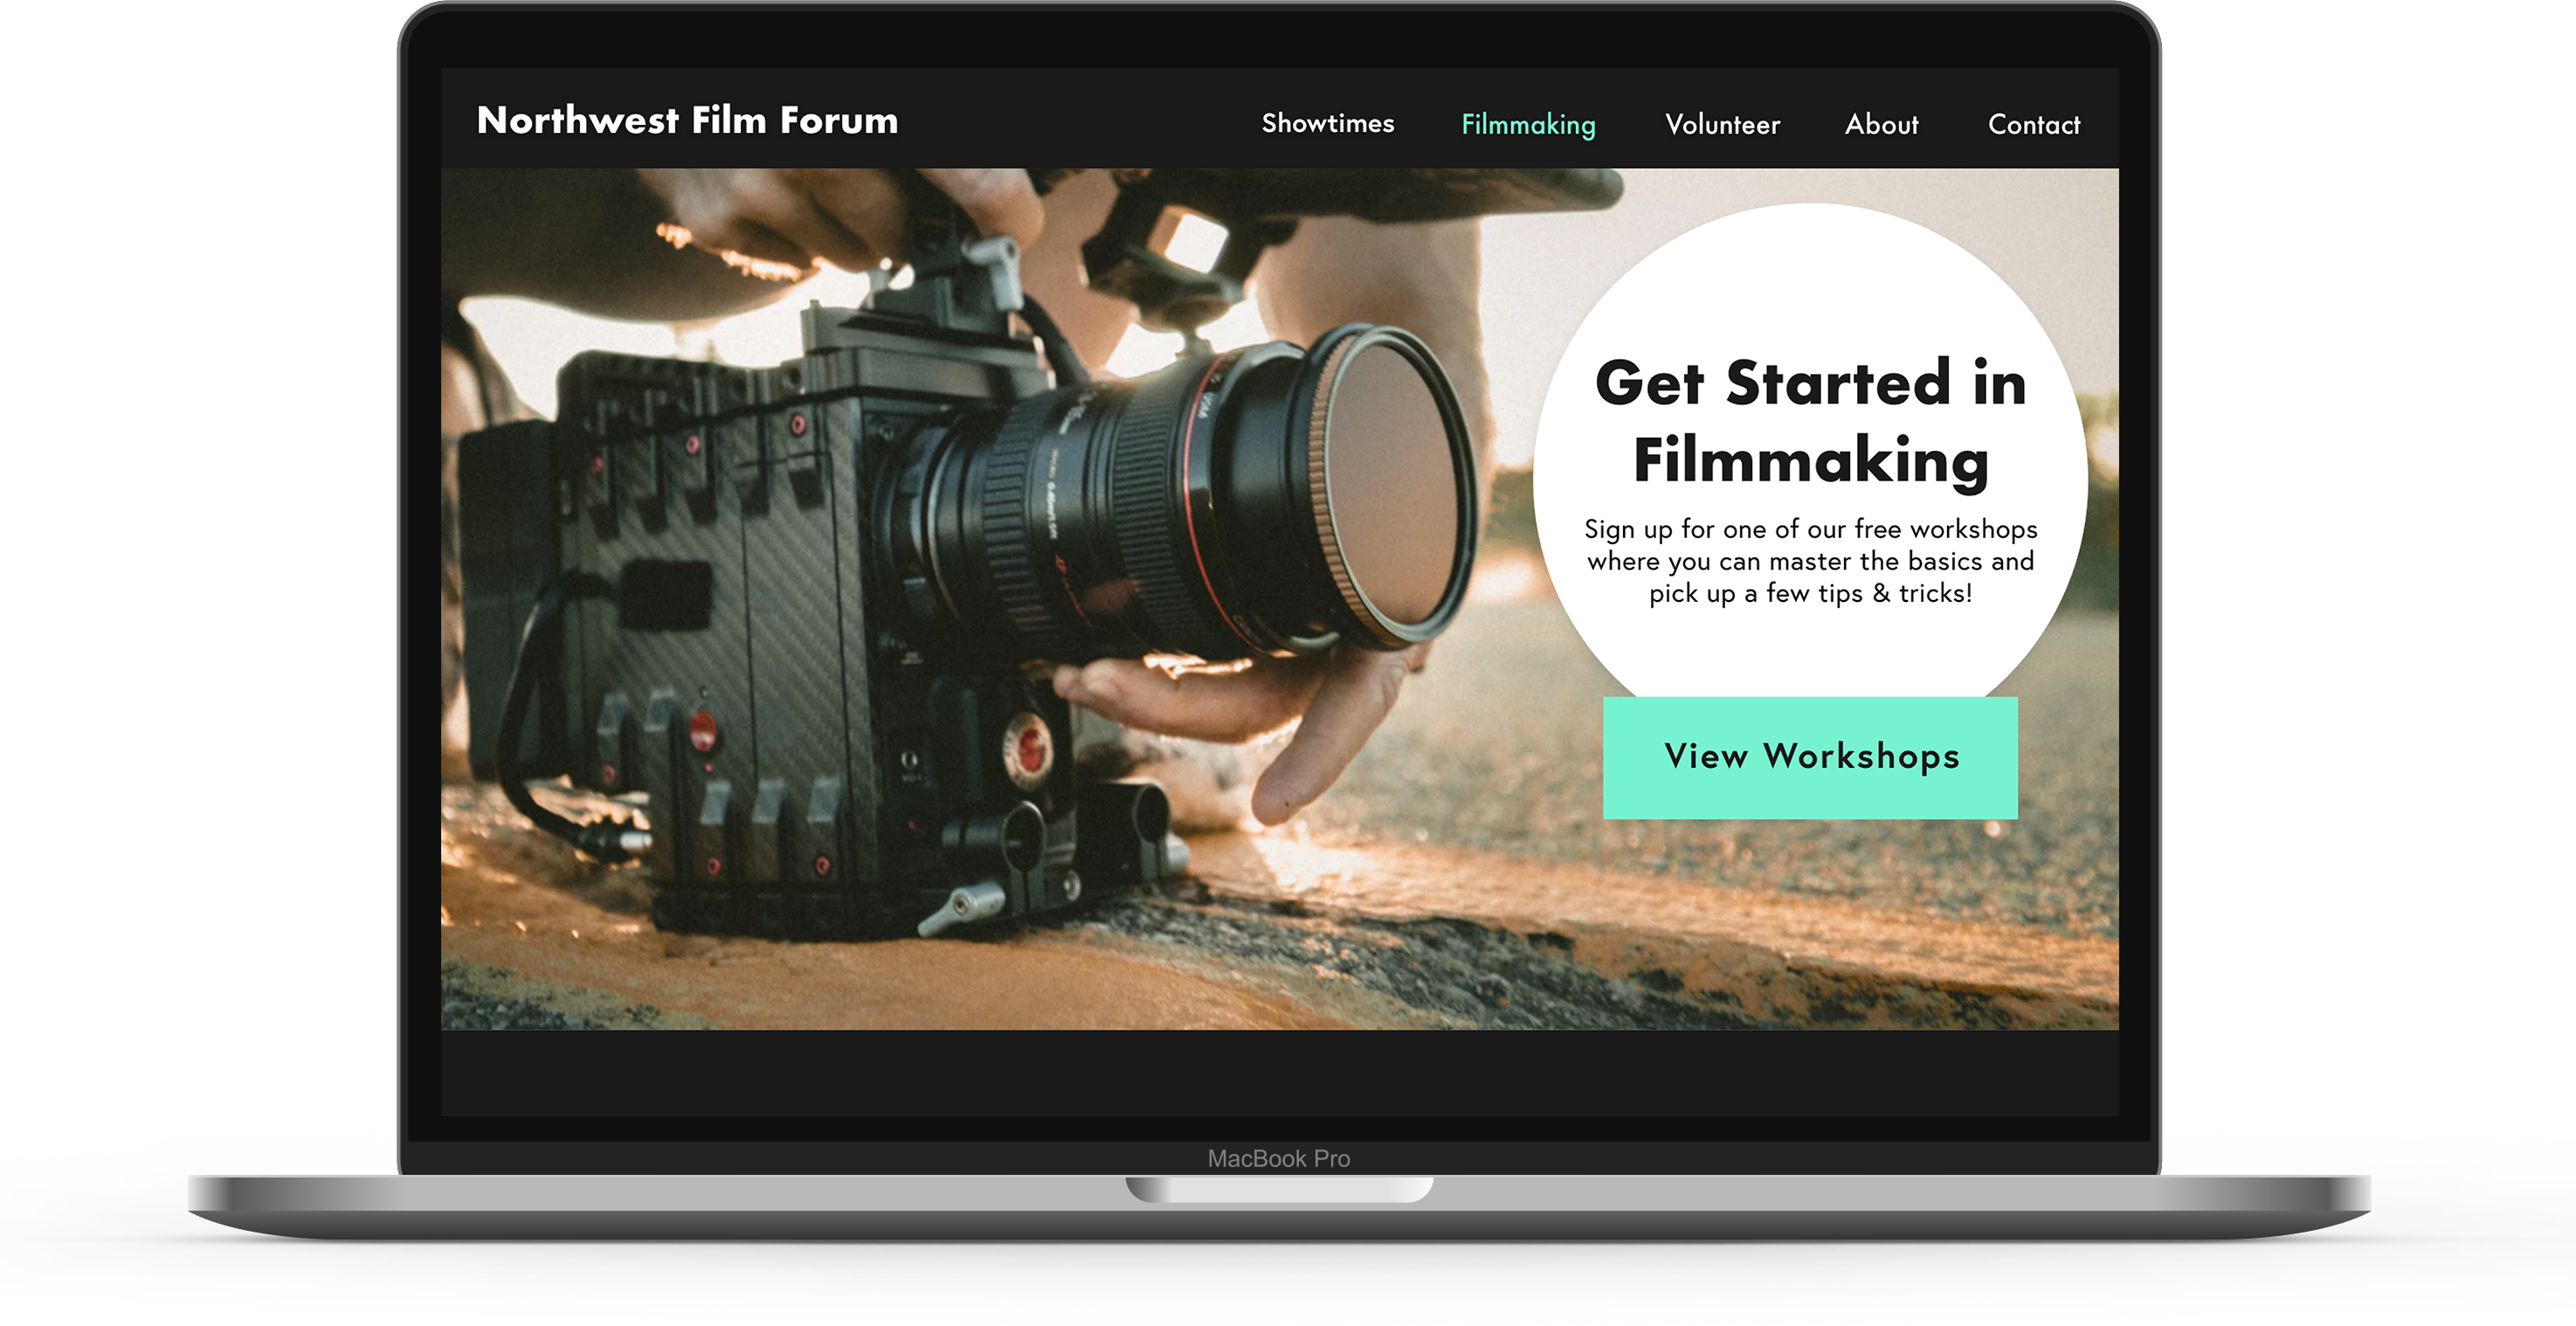 A laptop displaying a new version of the Northwest Film Forum website, showing a person setting up their camera to film